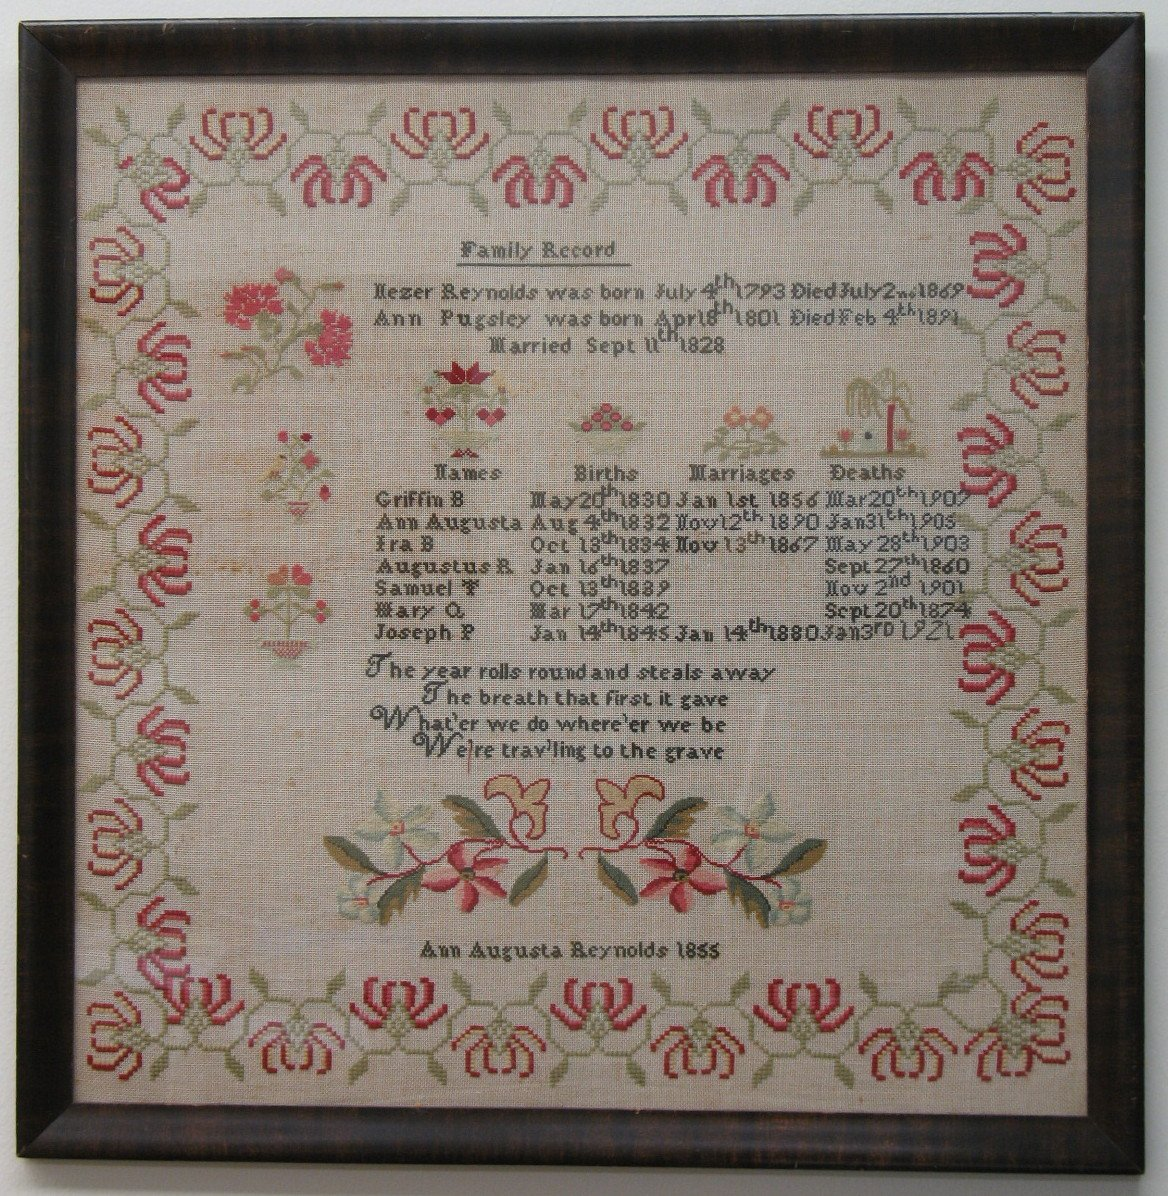 ANN AUGUSTA REYNOLDS 1855 ANTIQUE FAMILY RECORD VERSE SAMPLER